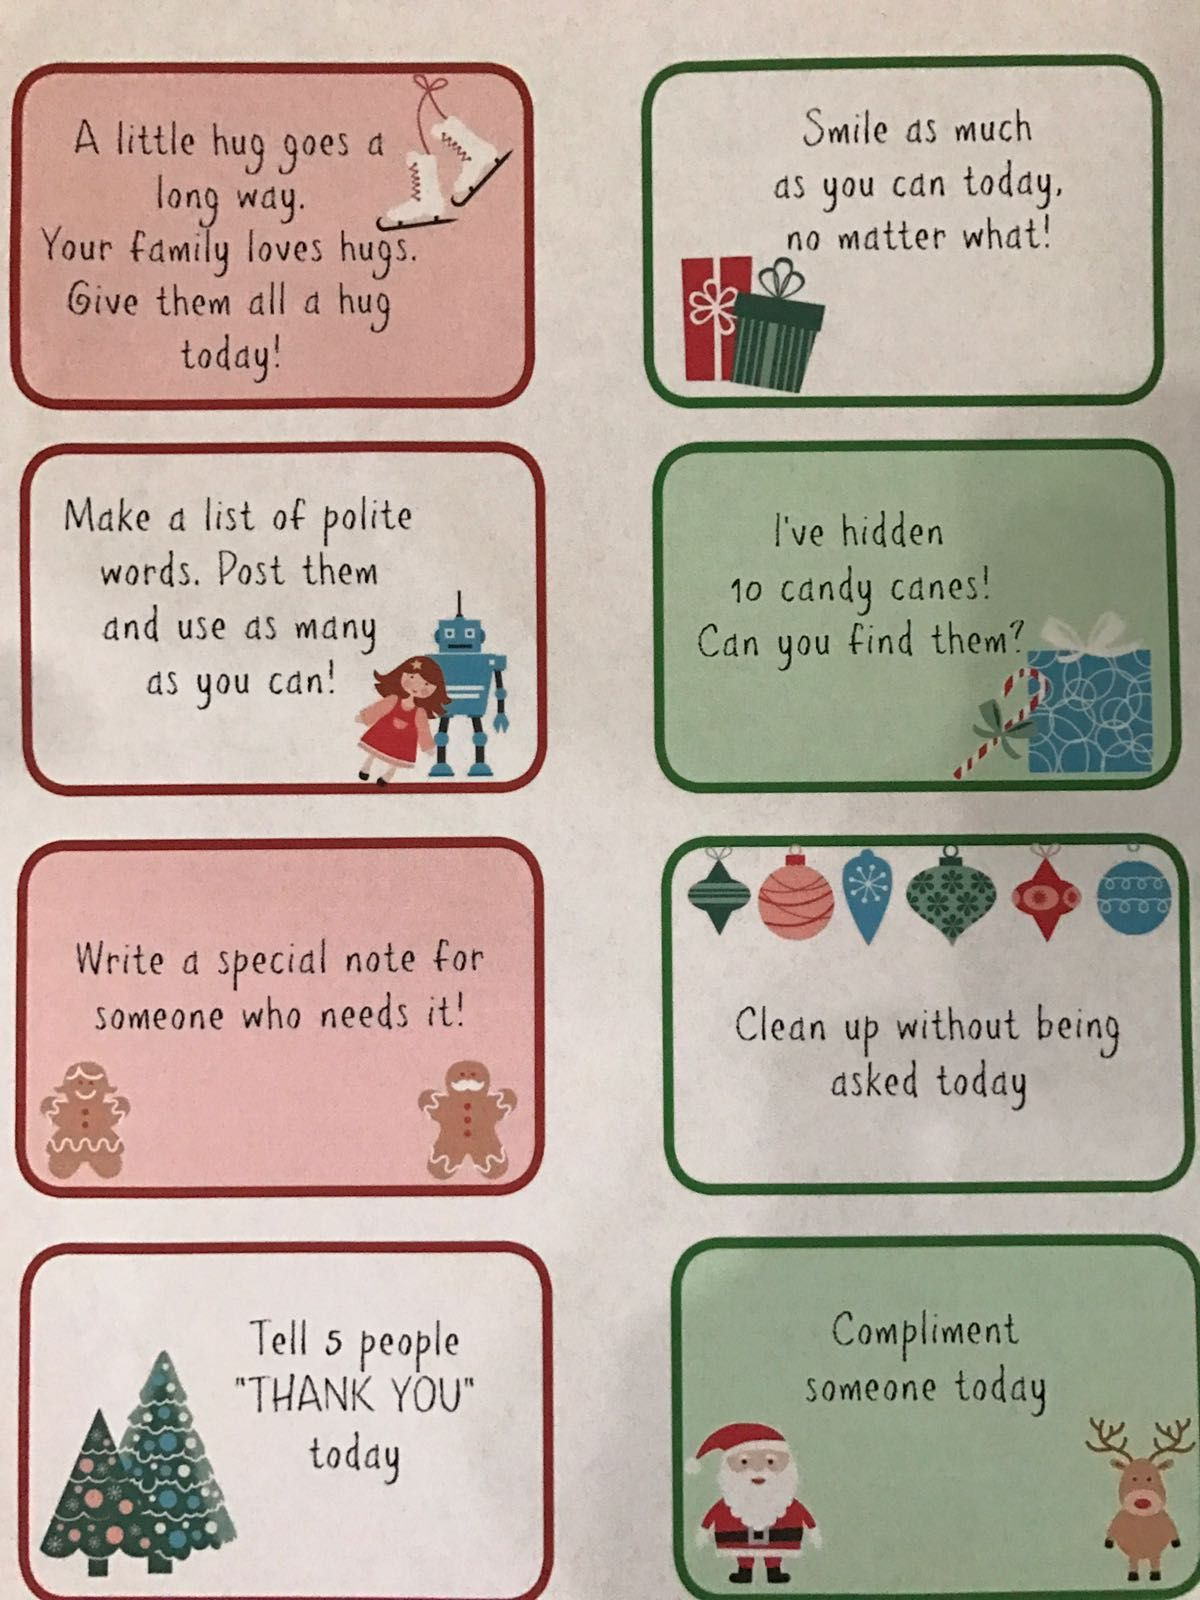 Keep In The Classroom For Two Weeks Each Day A New Instruction From The Elf Is Posted